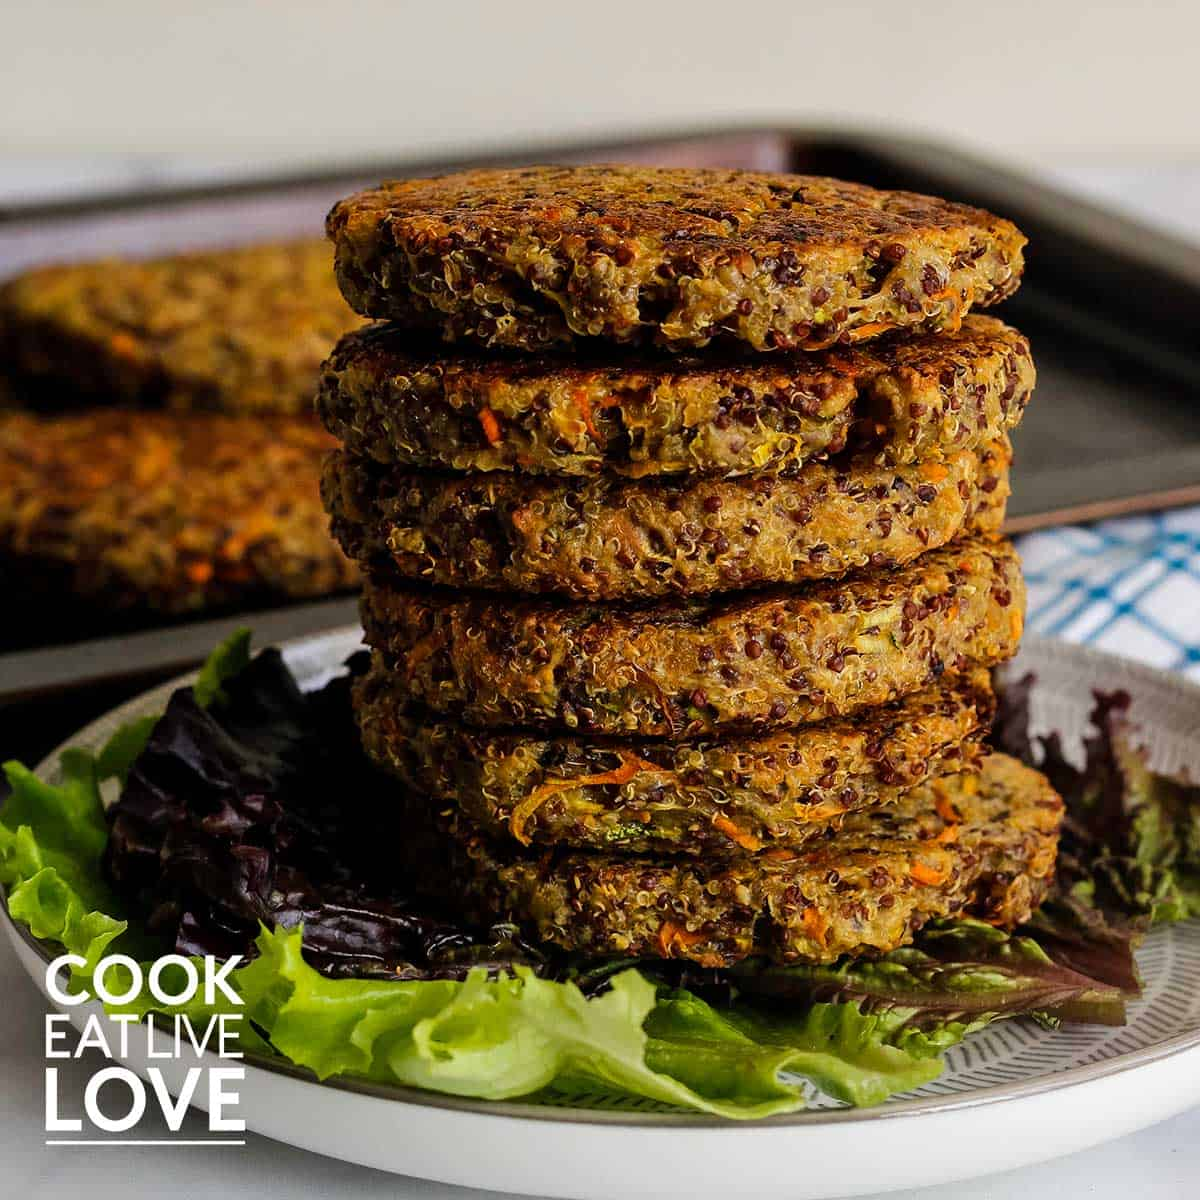 Stack of quinoa burgers on a plate with leaf lettuce.